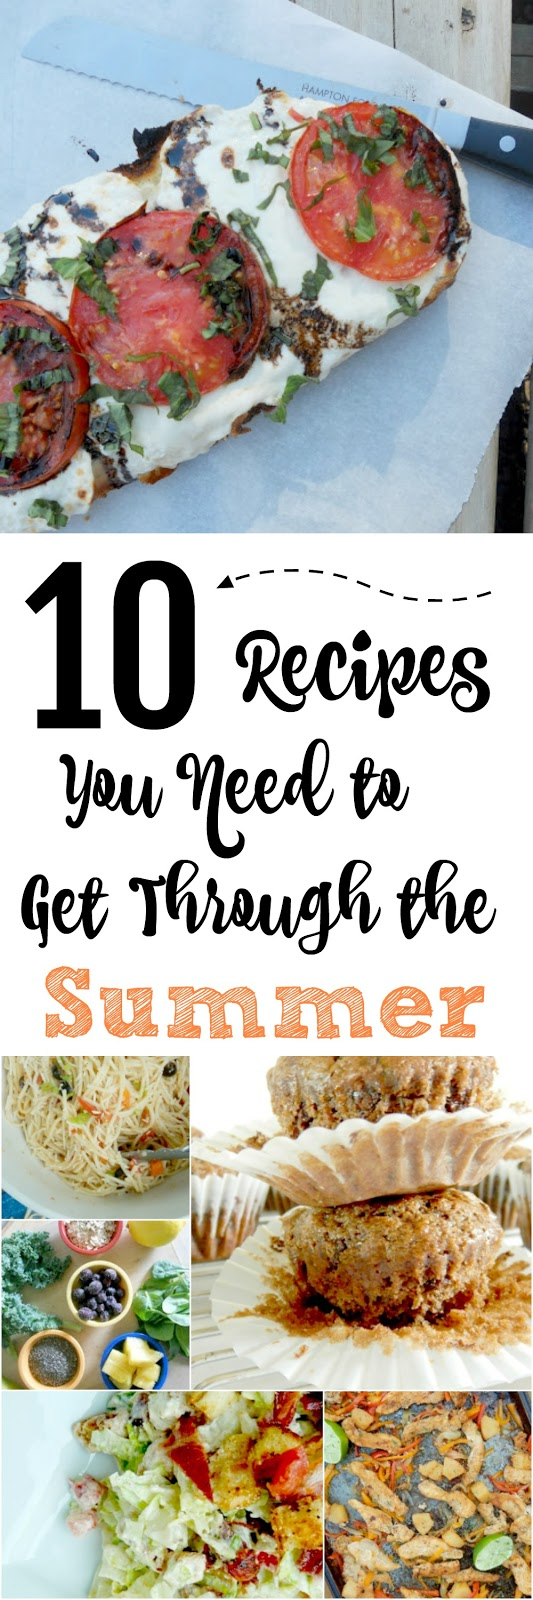 10 Recipes You Need to Get Through the Summer...these 10 meals are easy, delicious and dependable! (sweetandsavoryfood.com)